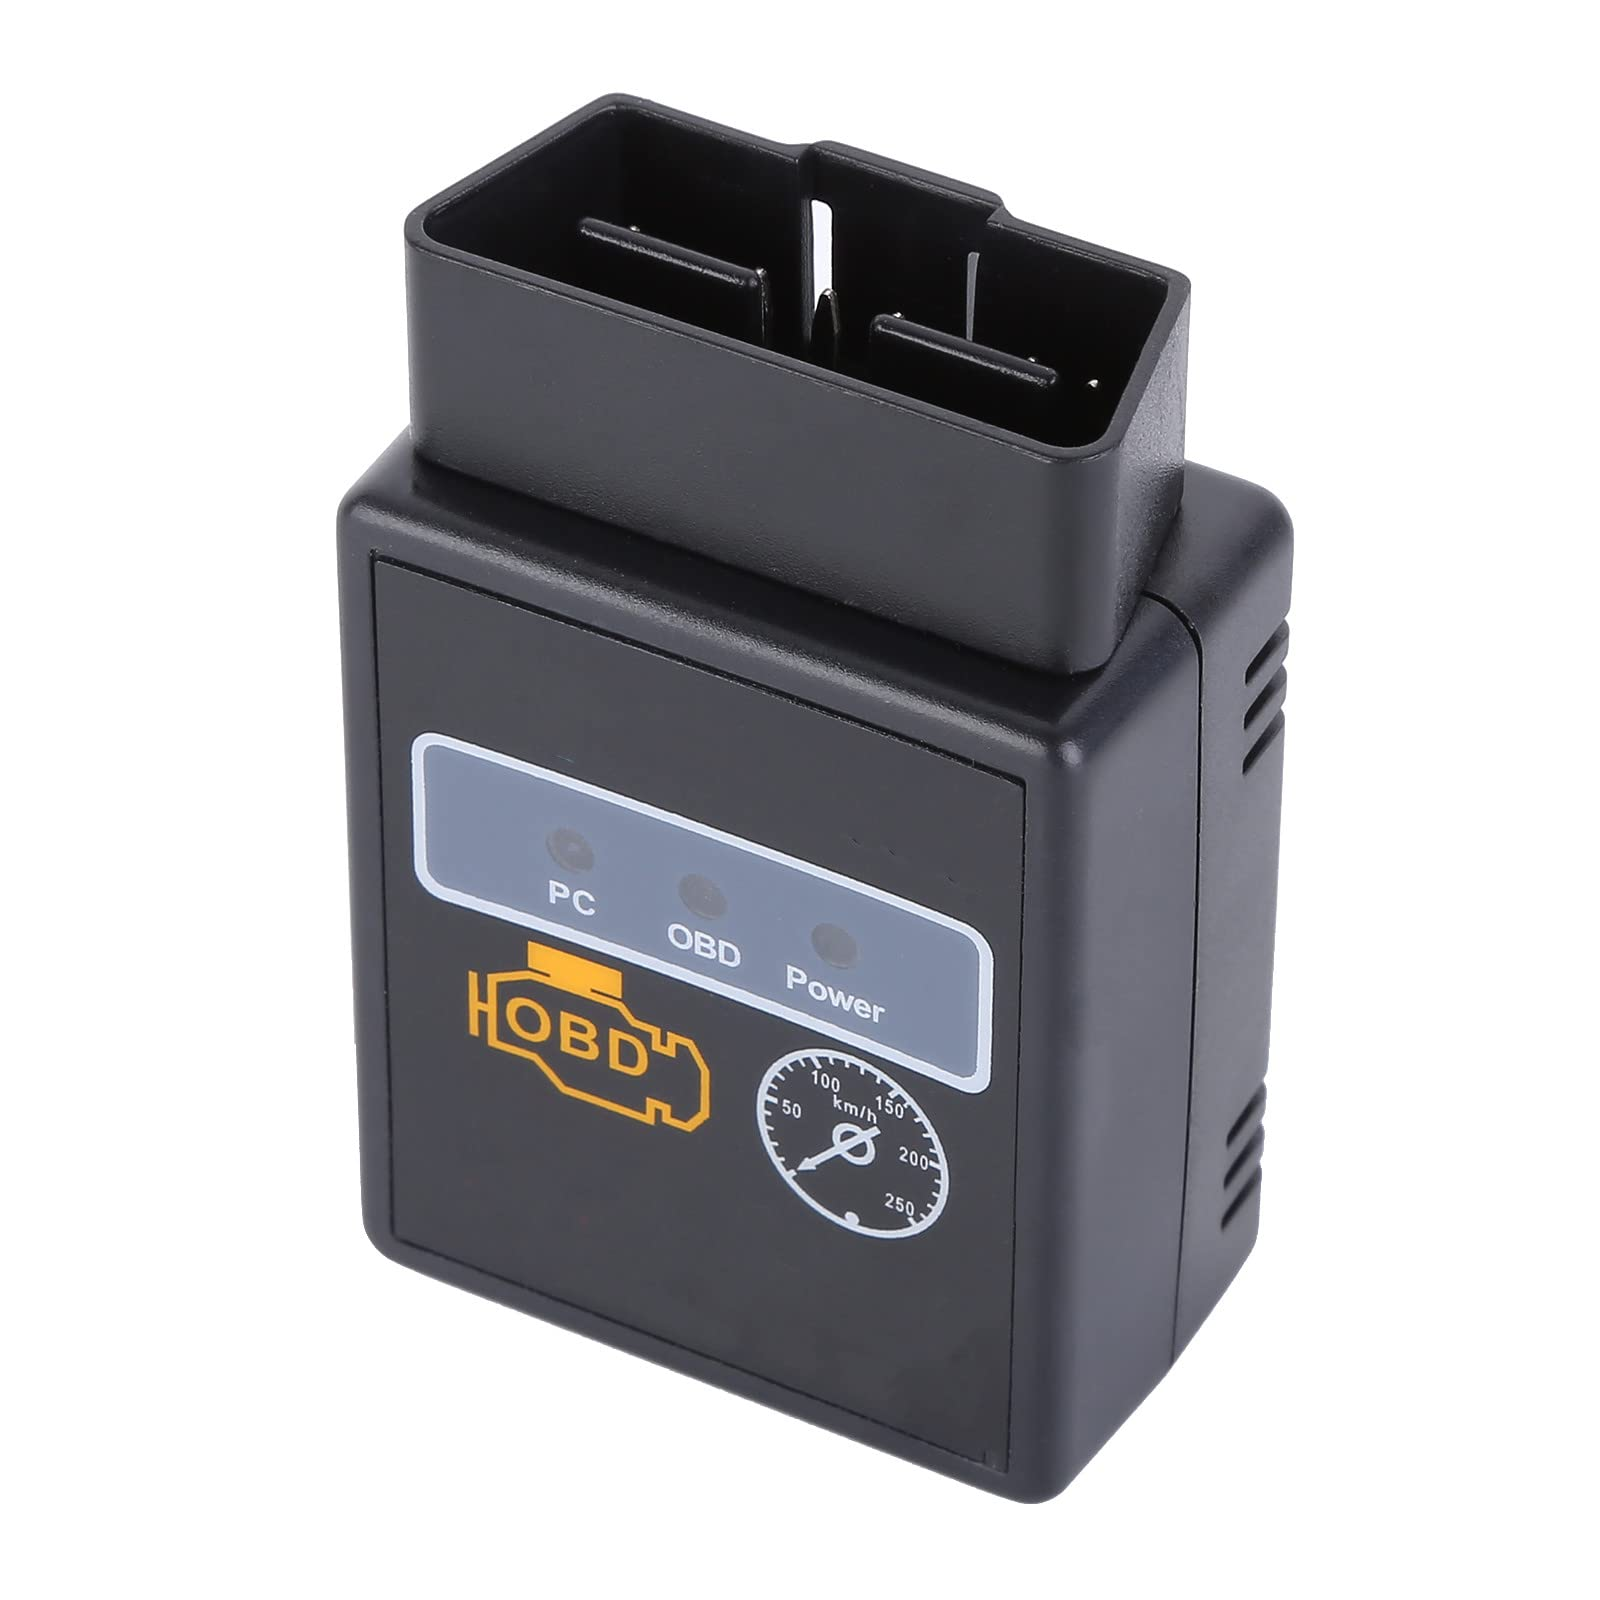 OBD 2 Diagnosegerät Auto Scanner,MoreChioce OBD-II Auto Bluetooth Diagnoseschnittstelle Scanner Tool Kfz Fehlerdetektor von MoreChioce